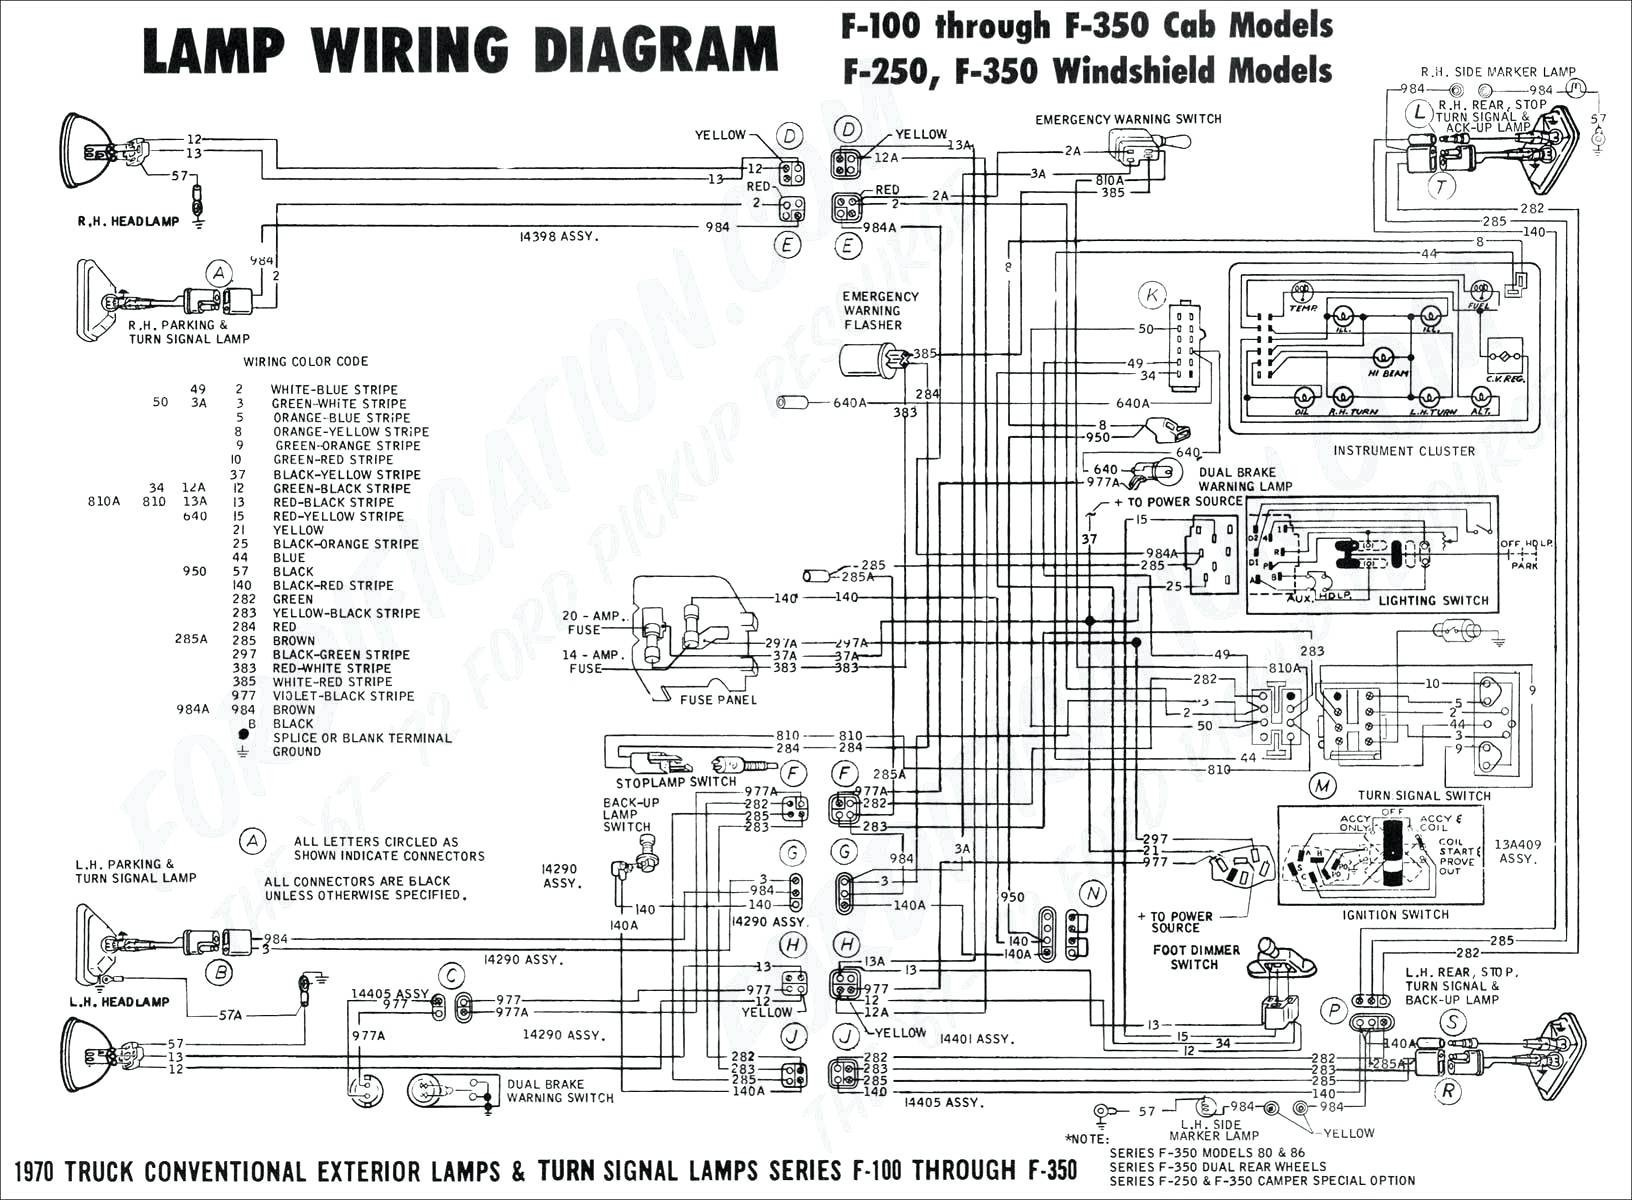 Wiring Diagram for Turn Signal Flasher Free Download S Series Wiring Diagram Wiring Diagram Database Of Wiring Diagram for Turn Signal Flasher